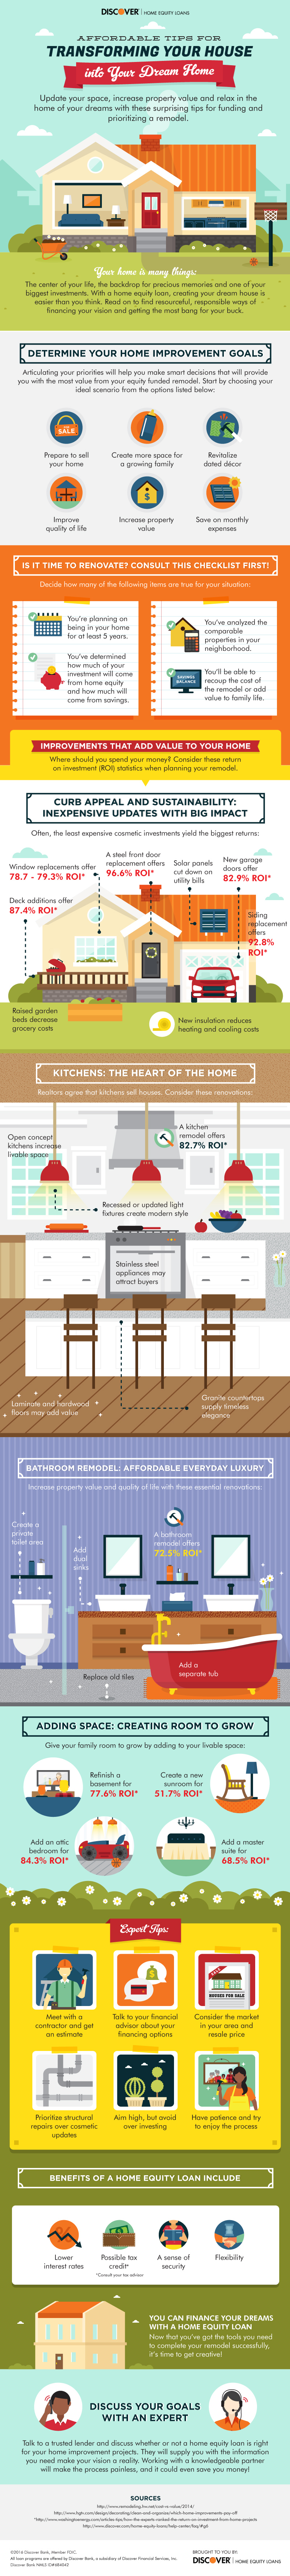 How Your Home Transformation Project Can Pay Back Rich Dividends - Infographic